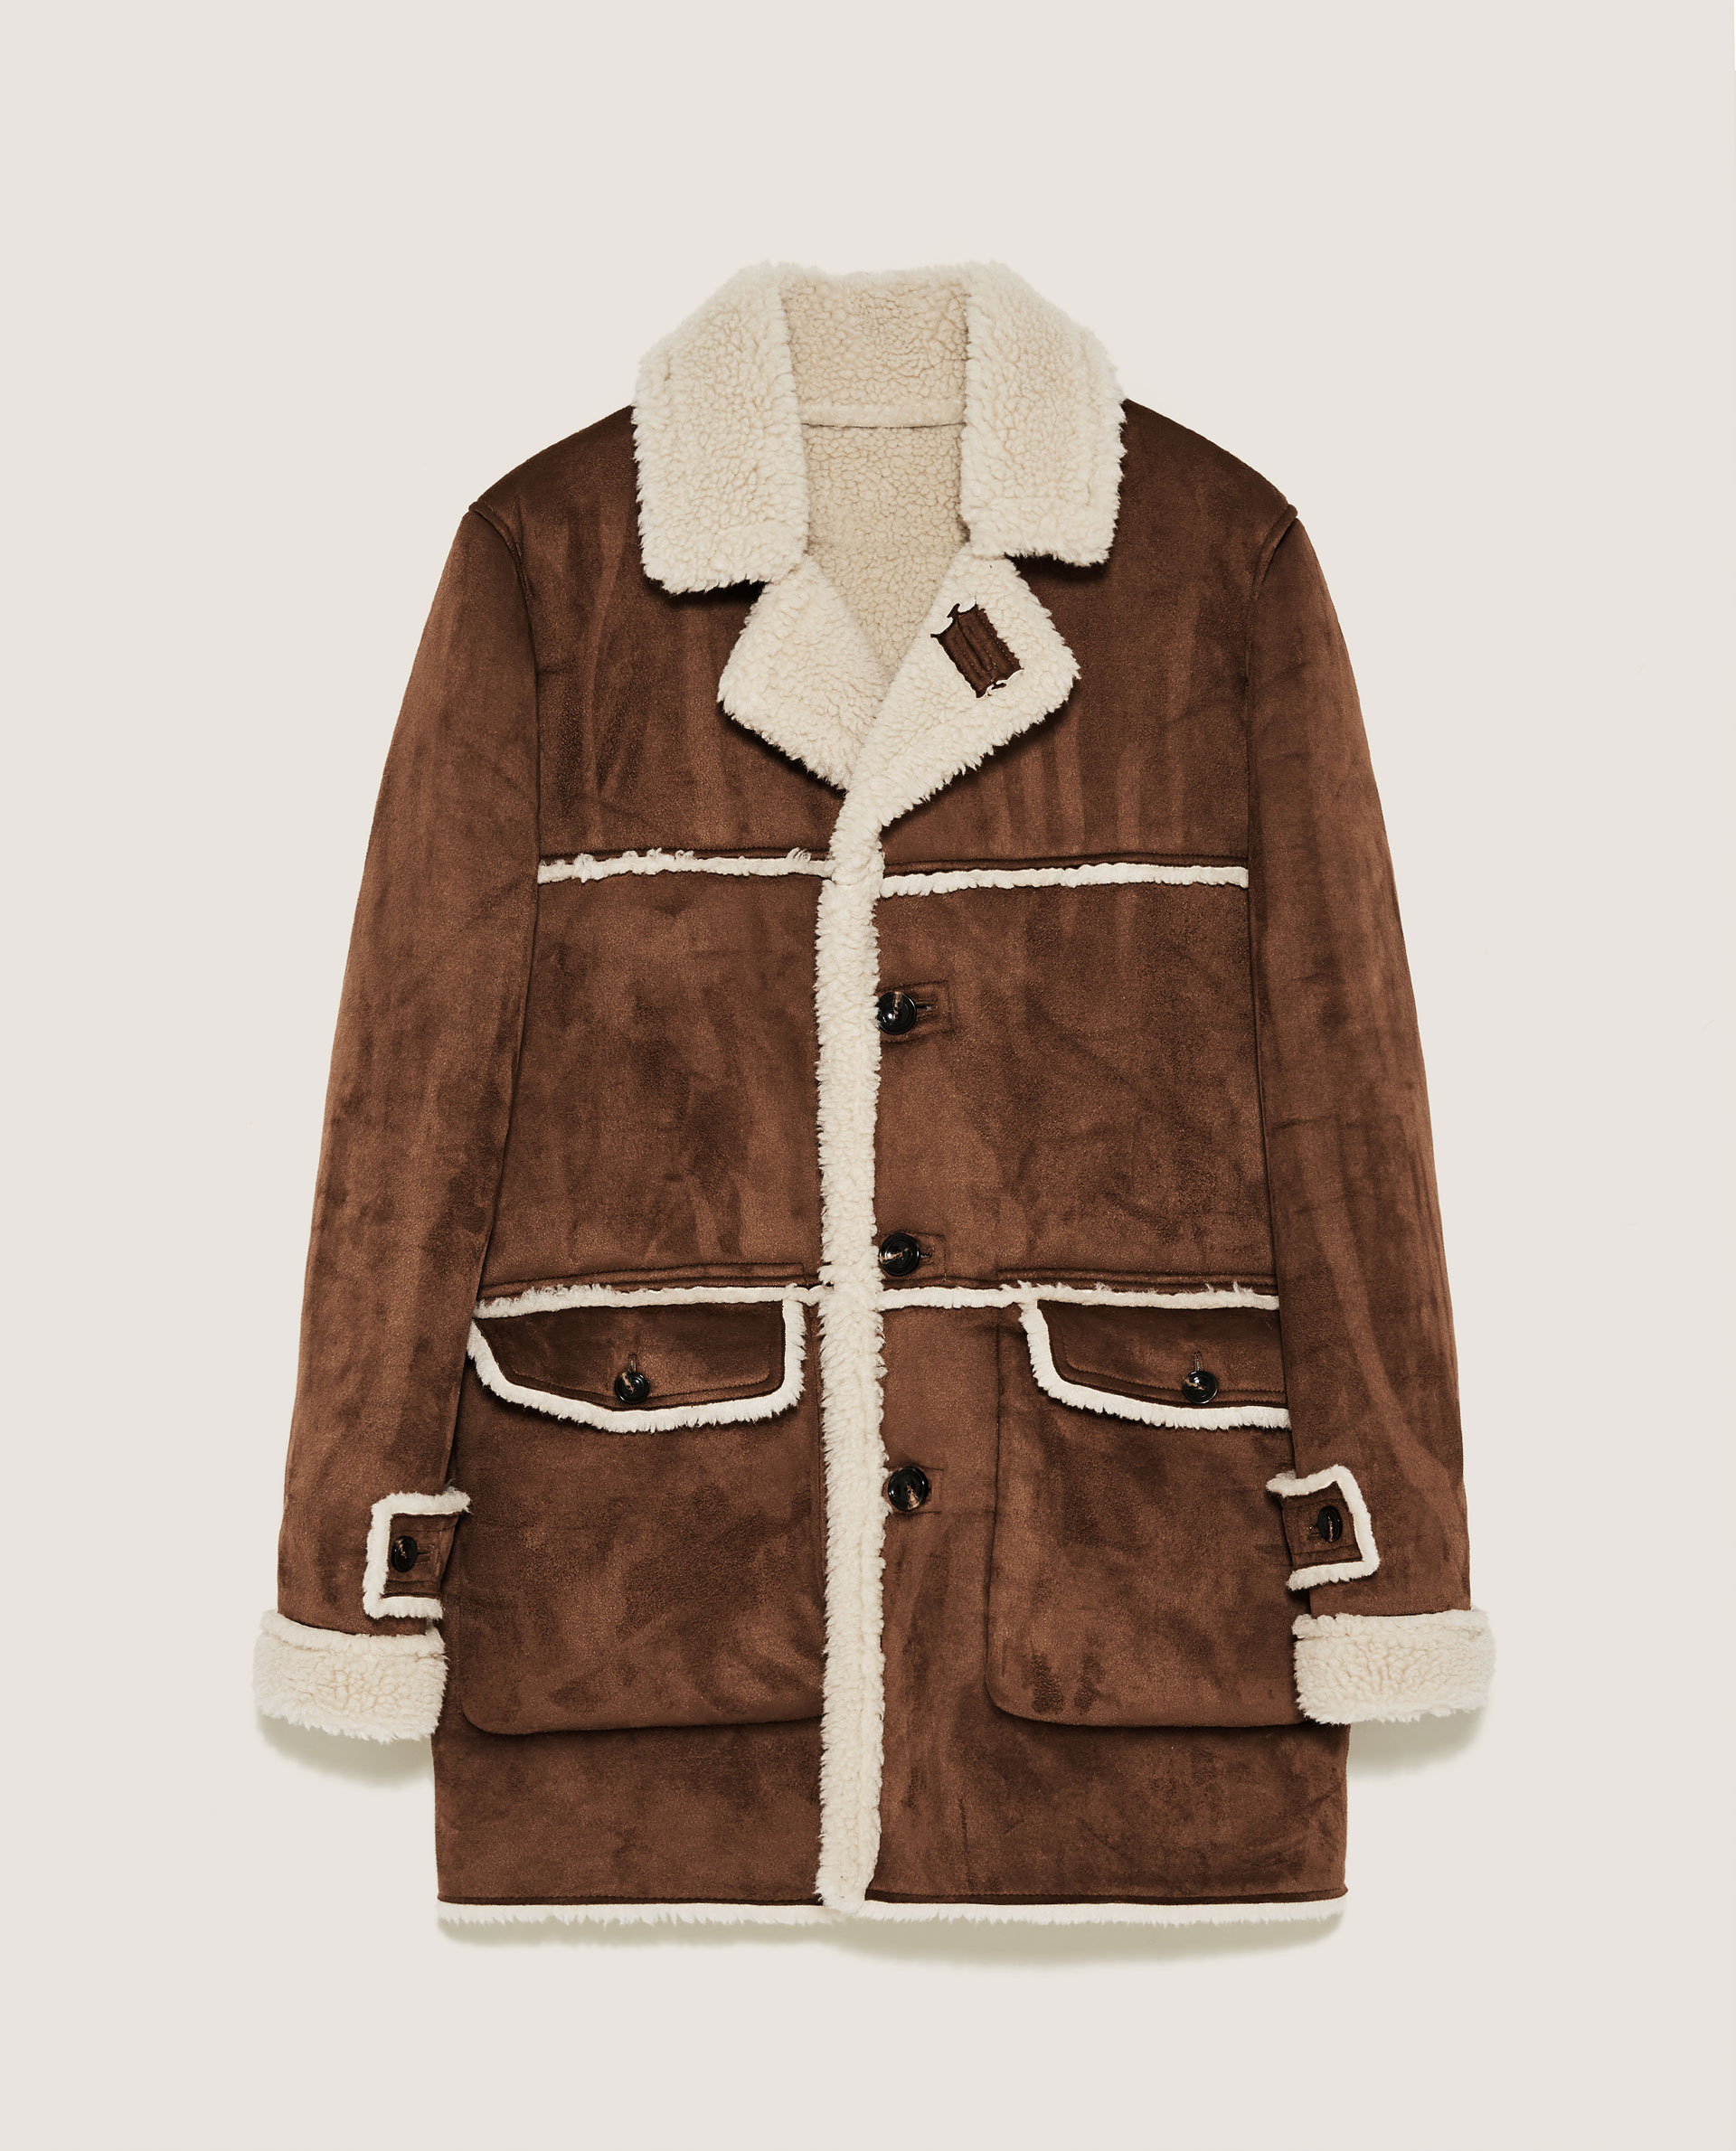 ZARA DOUBLE-SIDED COAT